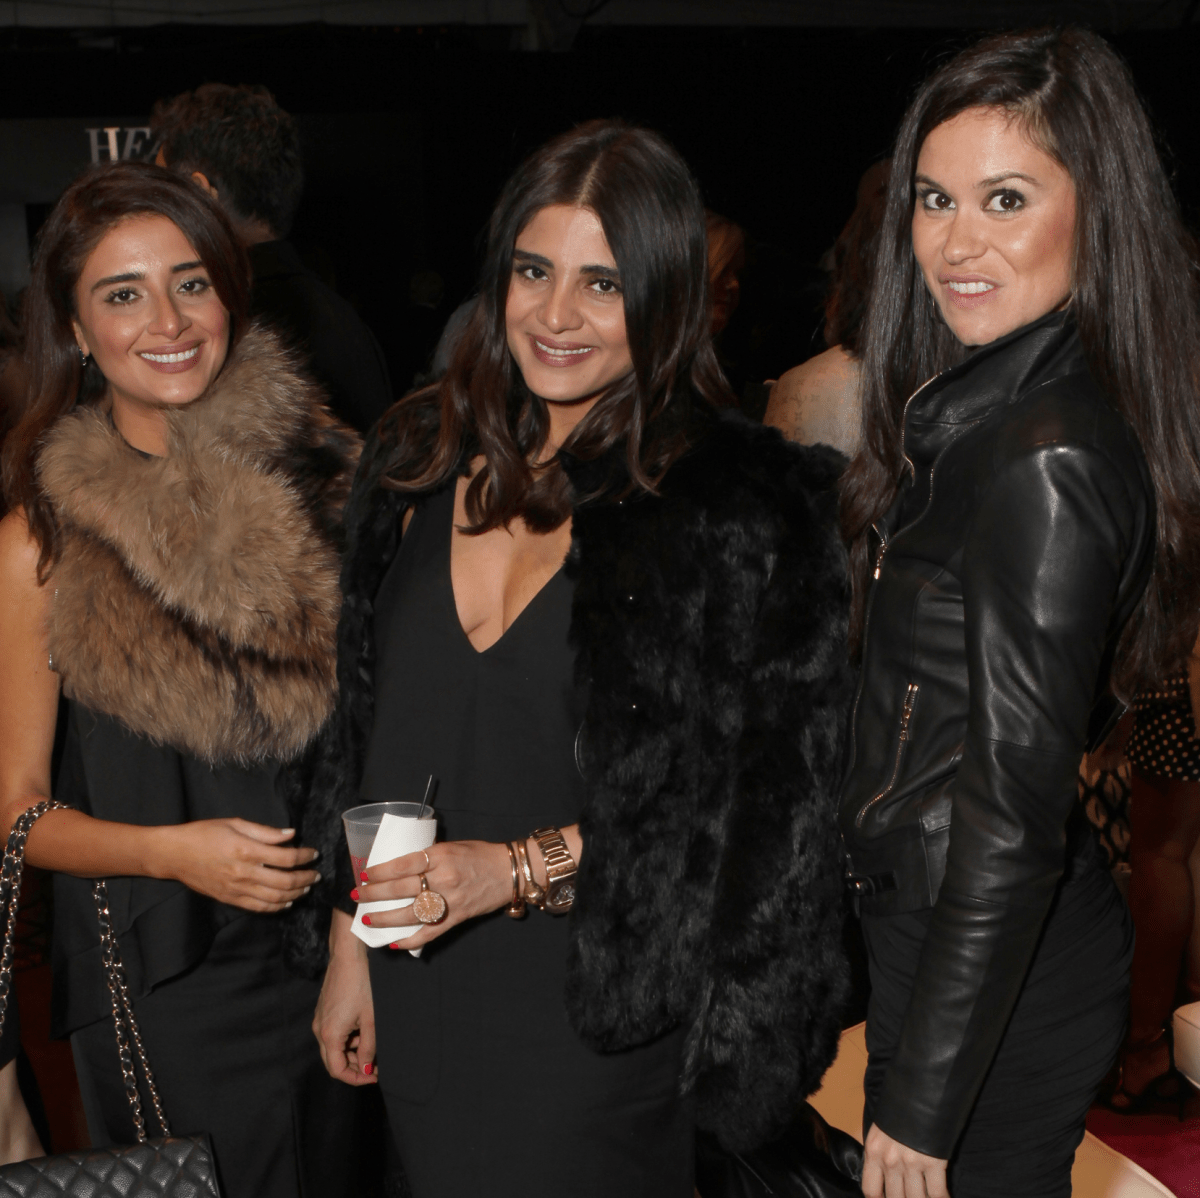 Saba Jawda, Sarah Jawda, Natassia McMillian at Heart of Fashion